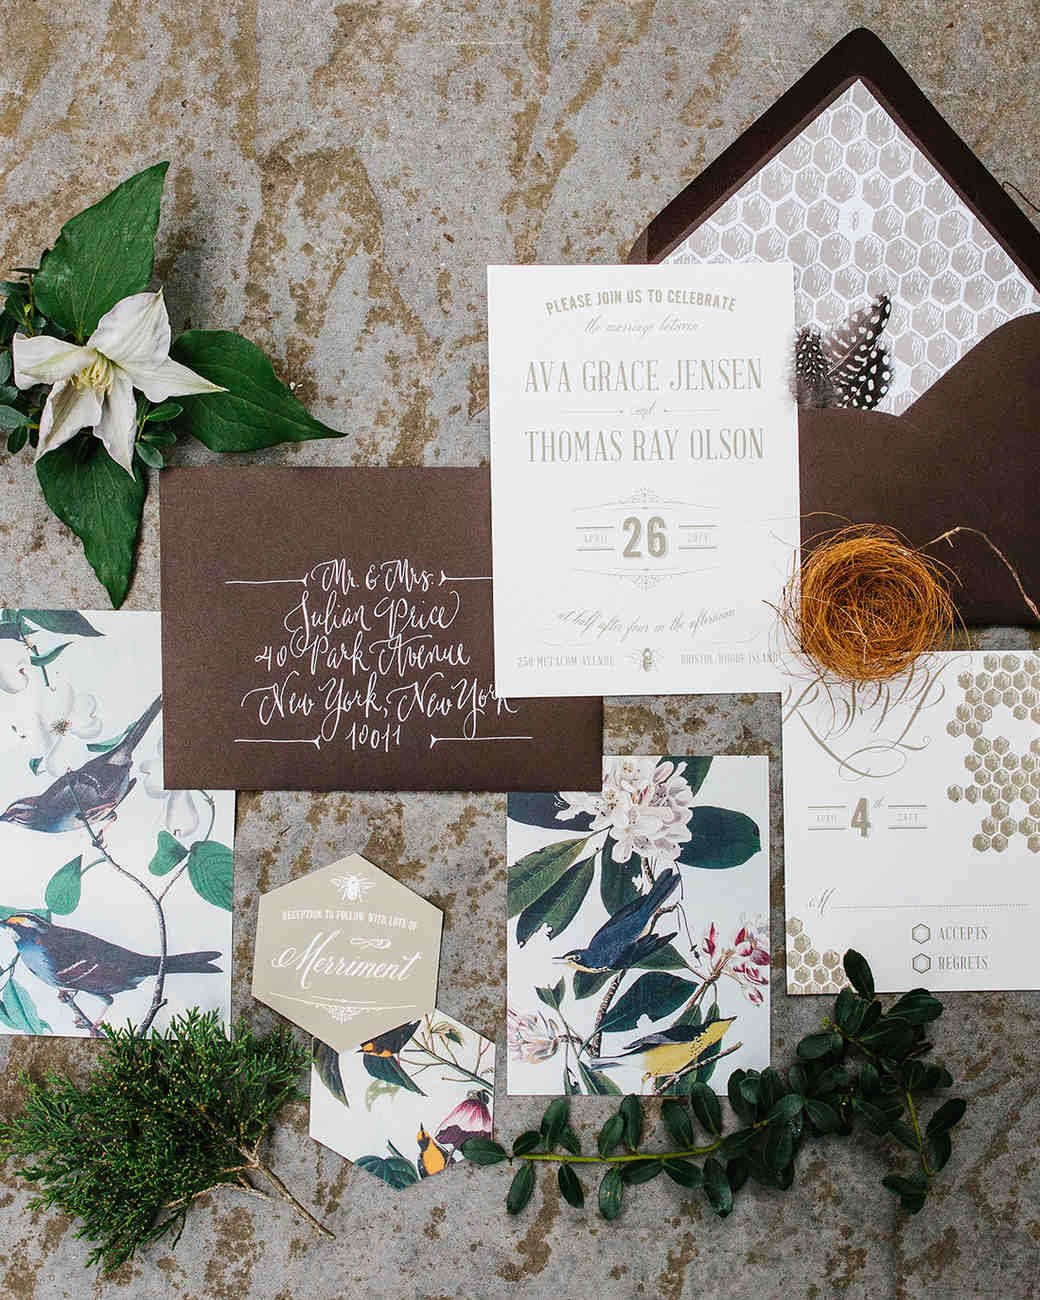 Honeycomb Wedding Inspiration, Invitation Suite with Honeycomb Liner and Motif on Invite